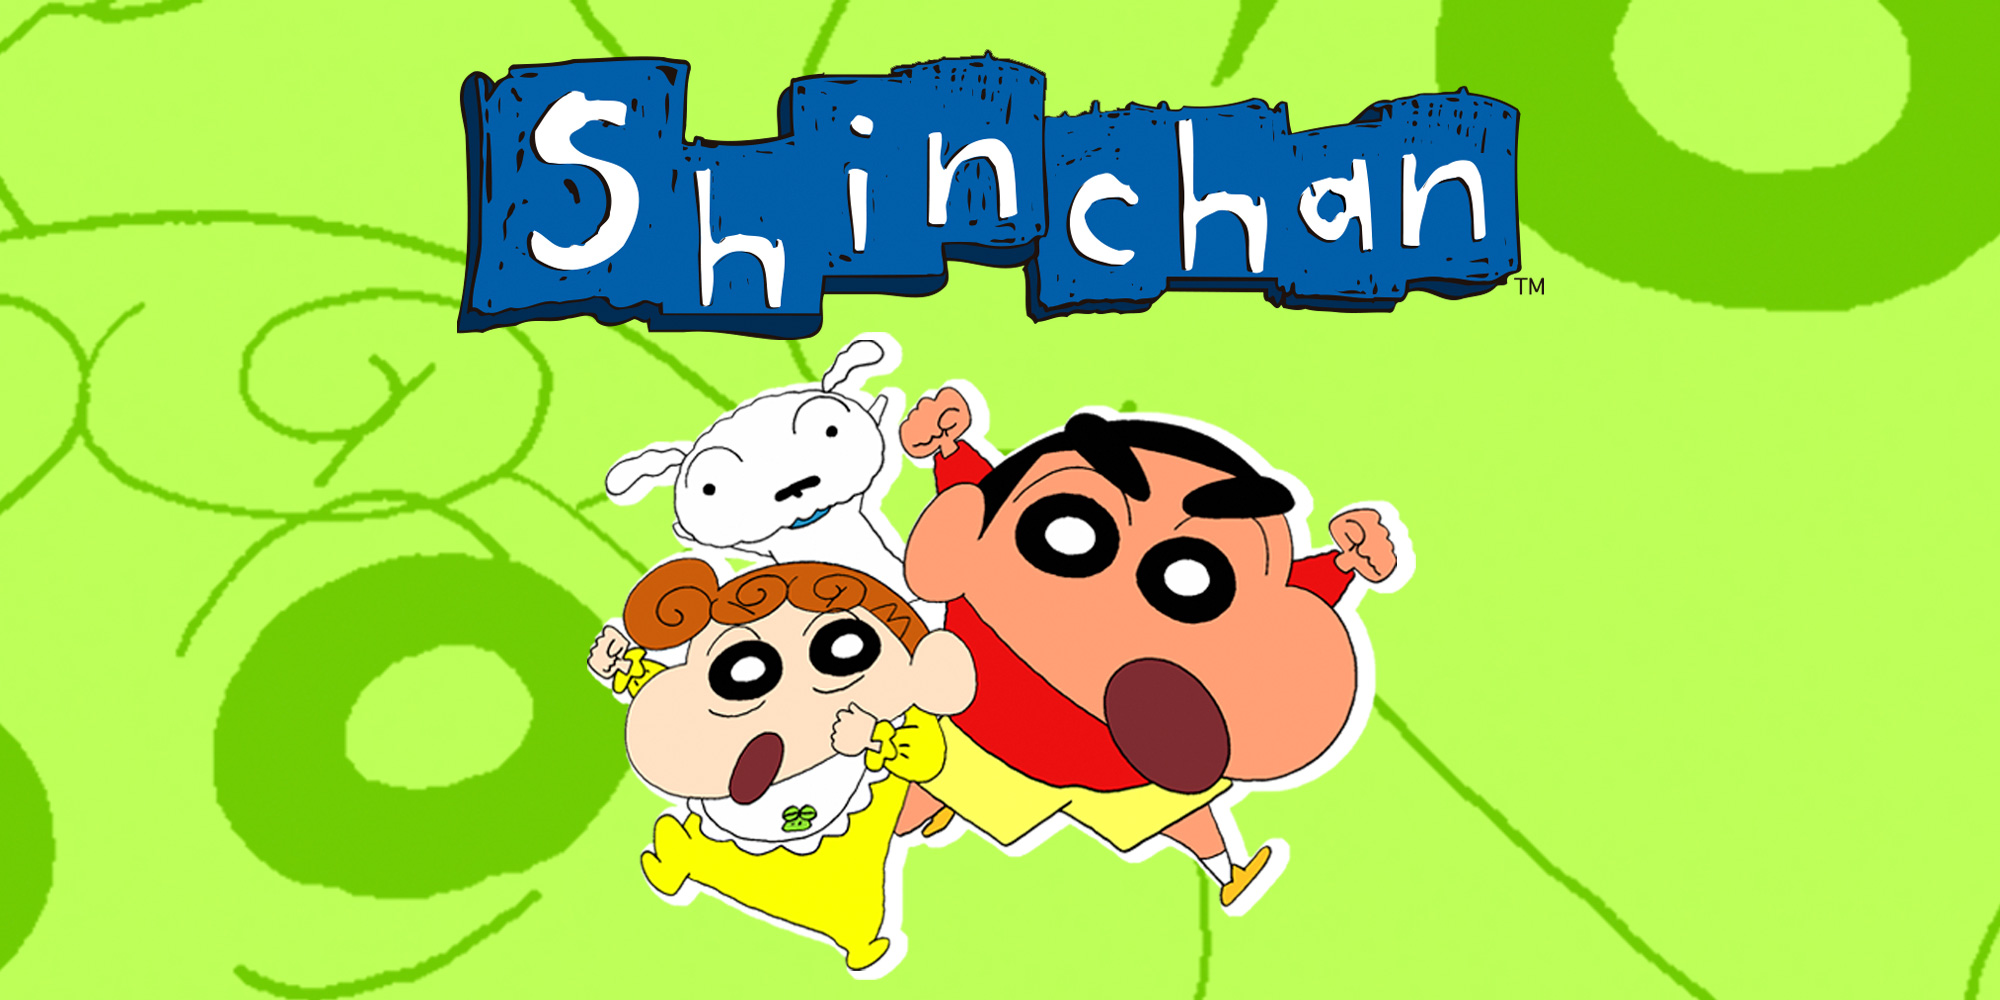 H2x1_3DSDV_ShinChan_Vol4.jpg